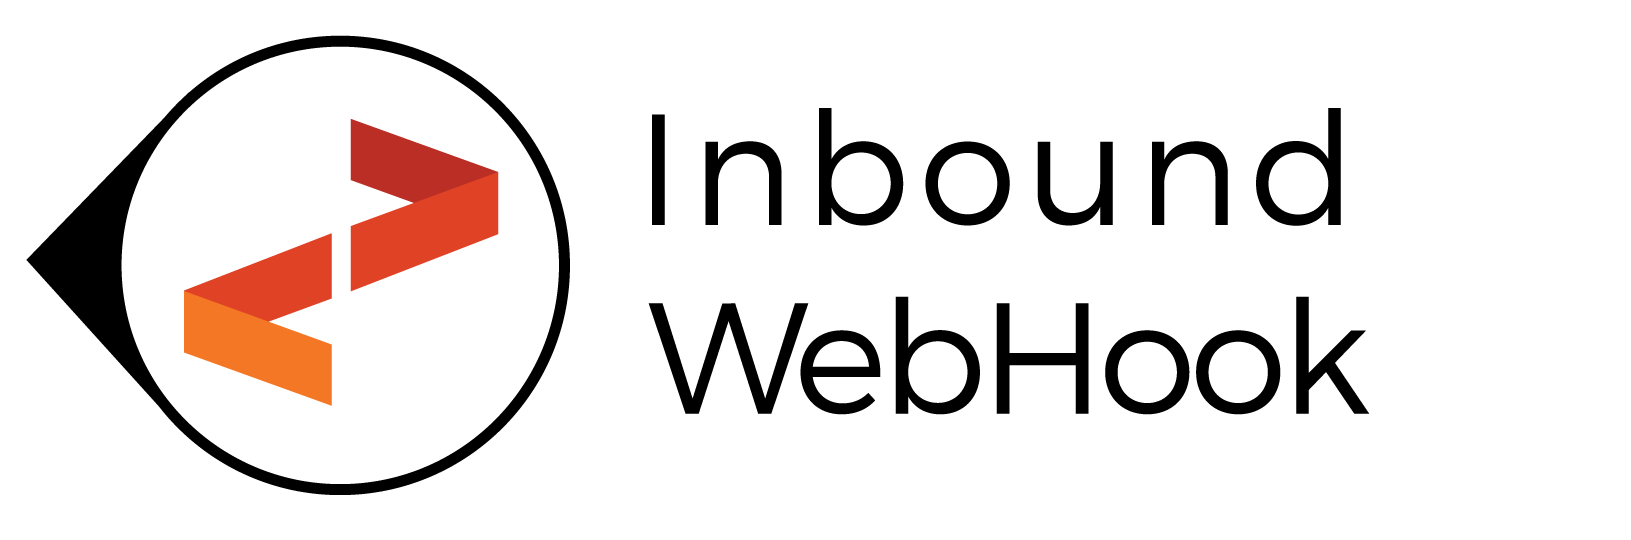 Zesty.io outbound webhook